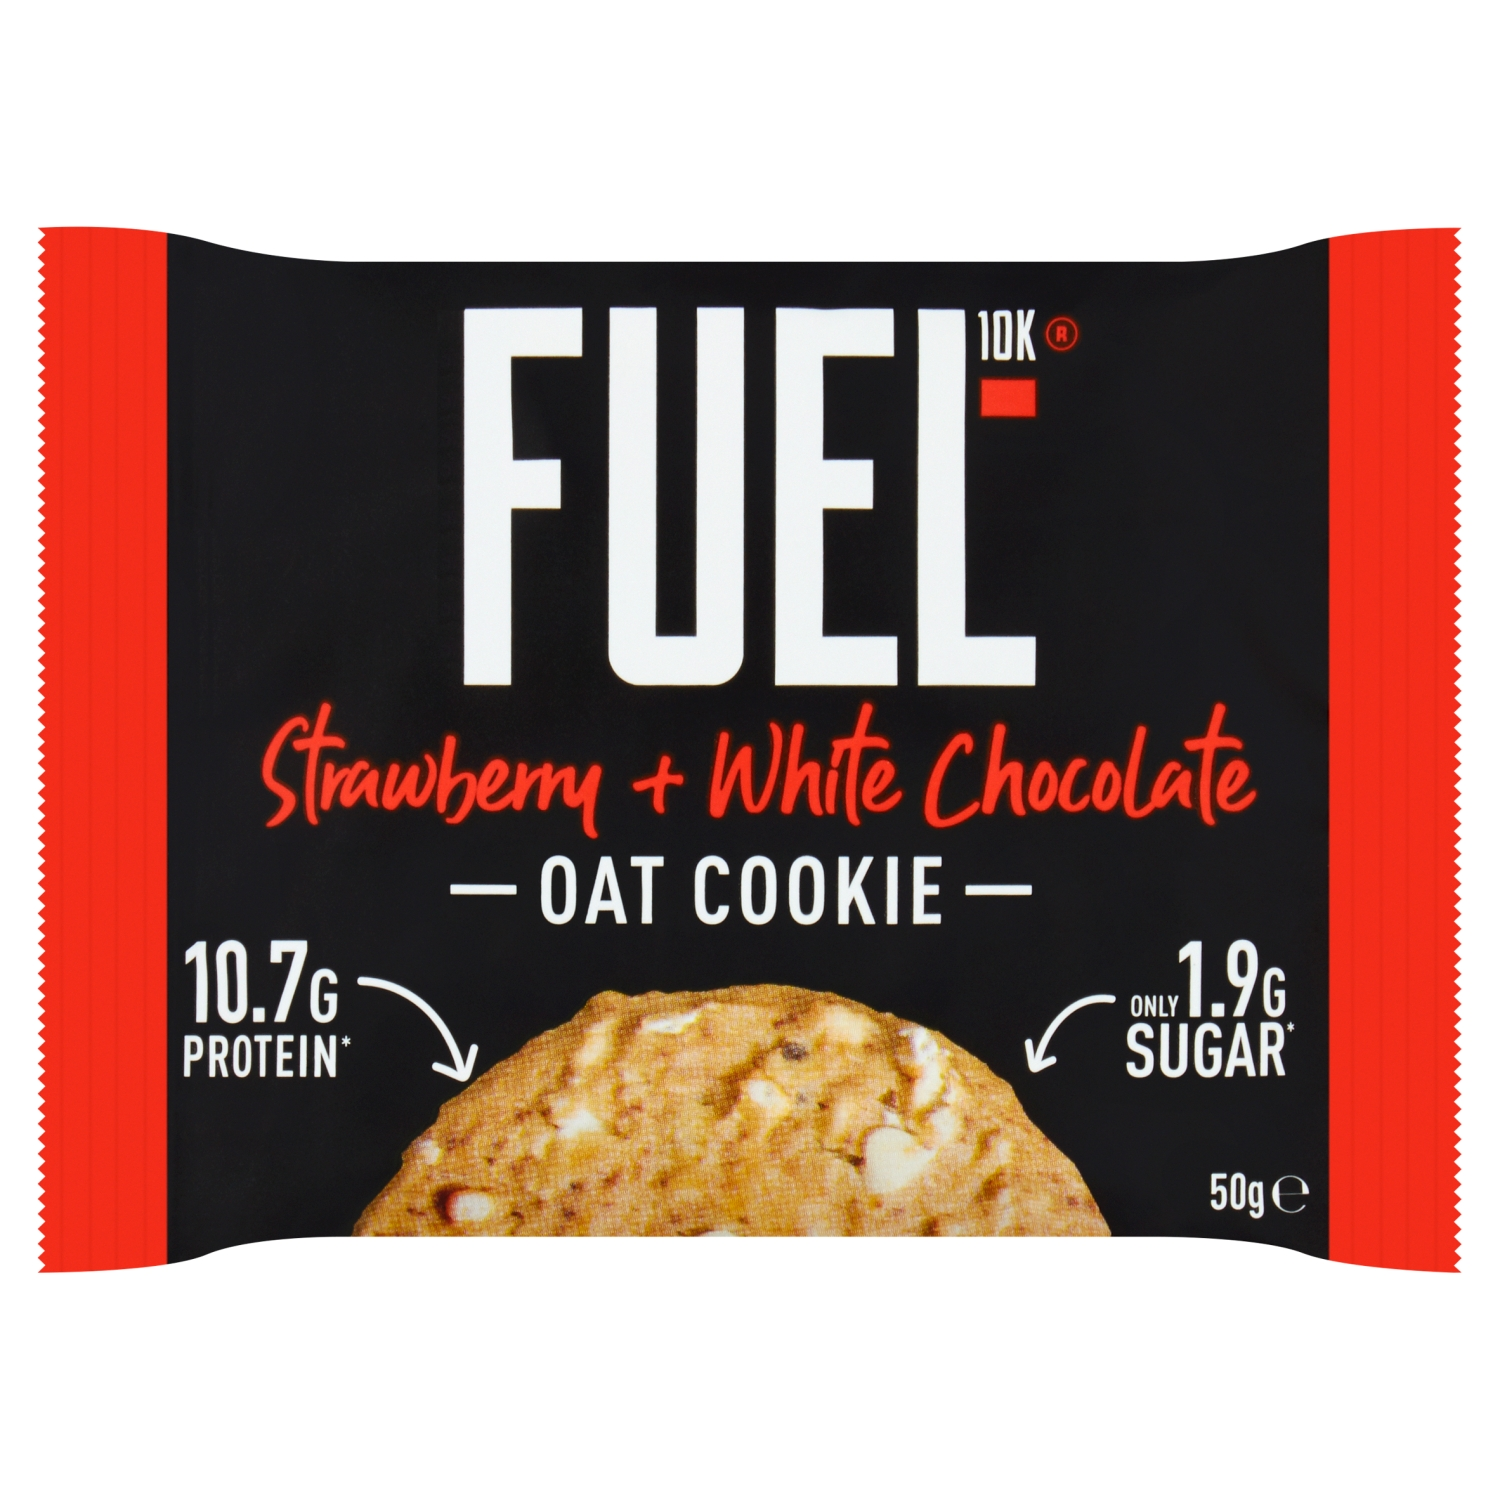 FUEL10K High Protein Strawberry + White Chocolate Breakfast Oat Cookie 50g